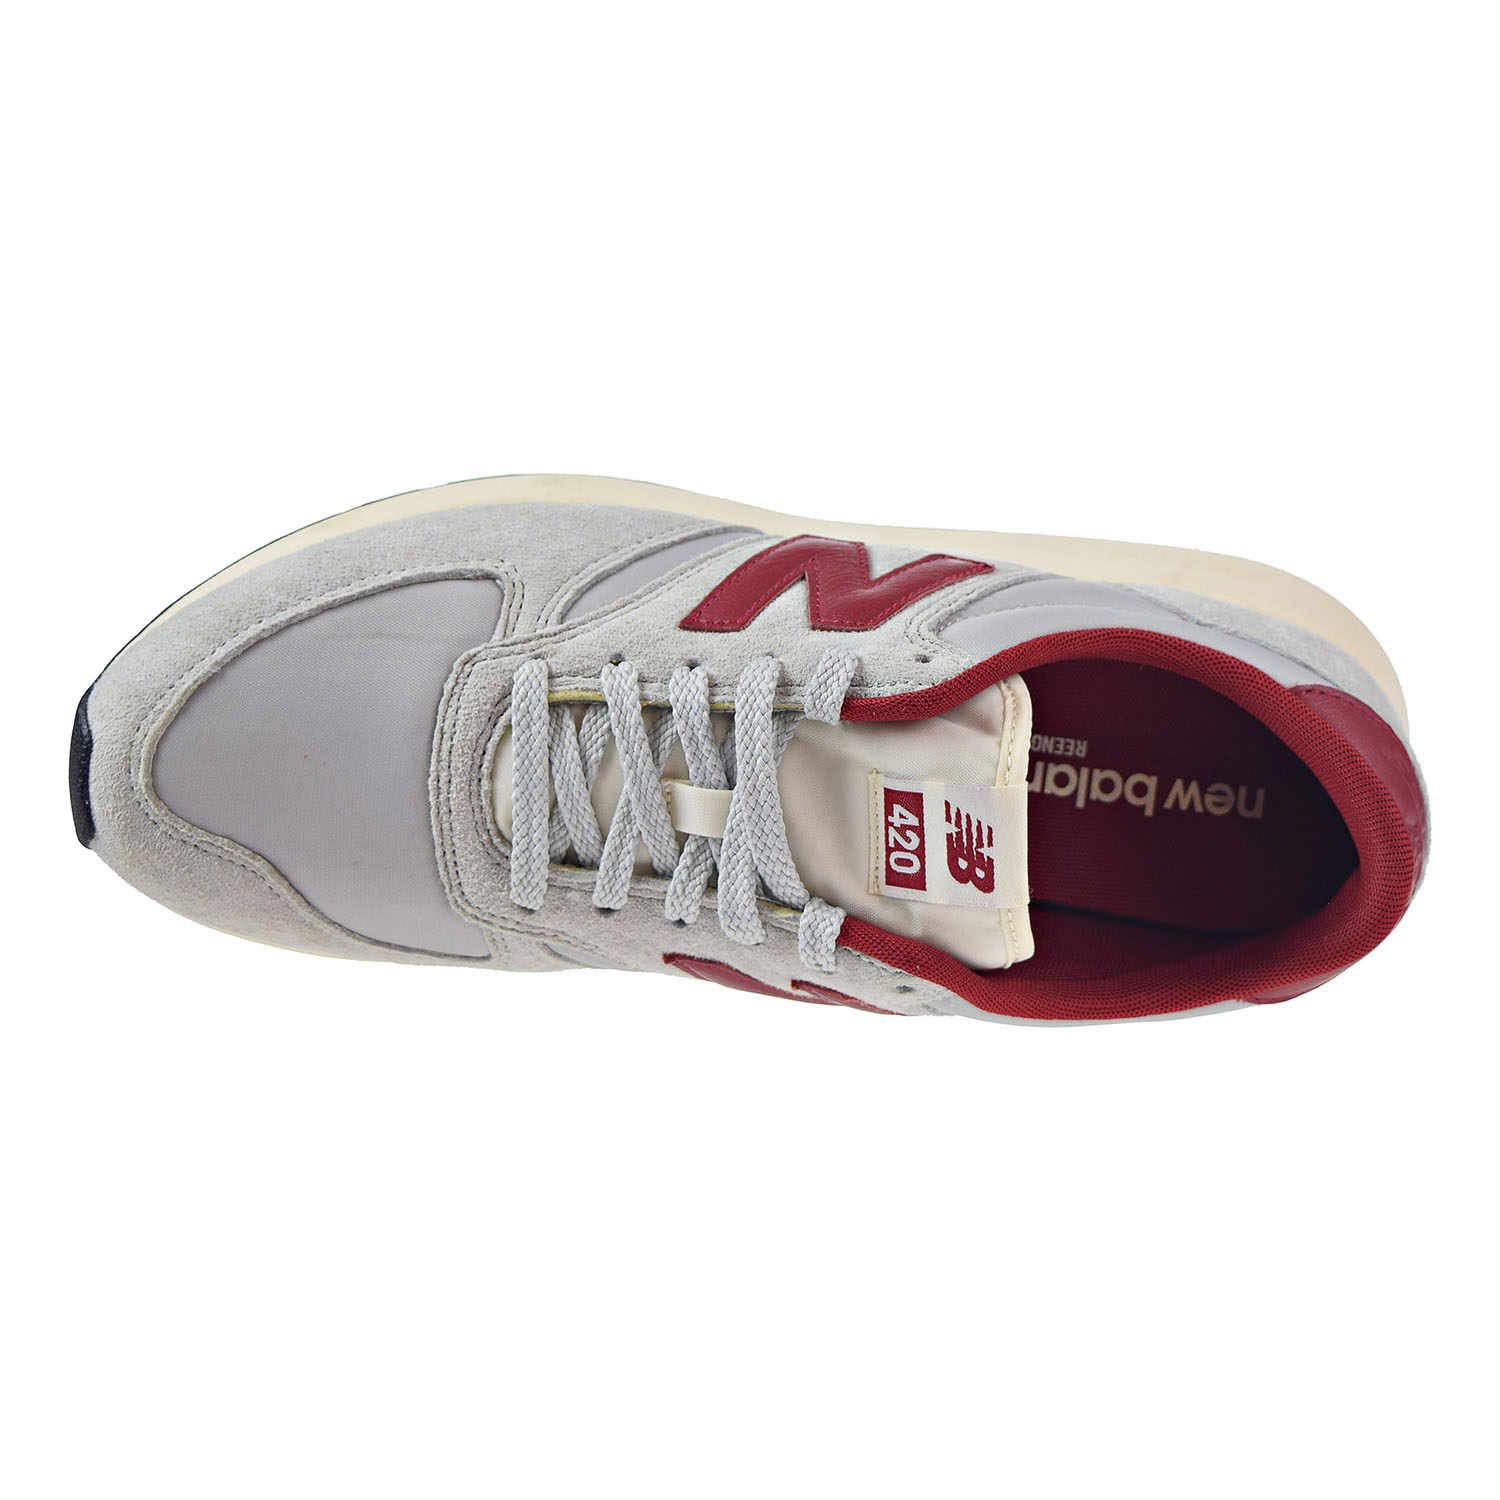 New Balance 420 Lifestyle Men's Shoes Grey/Red mrl420-st